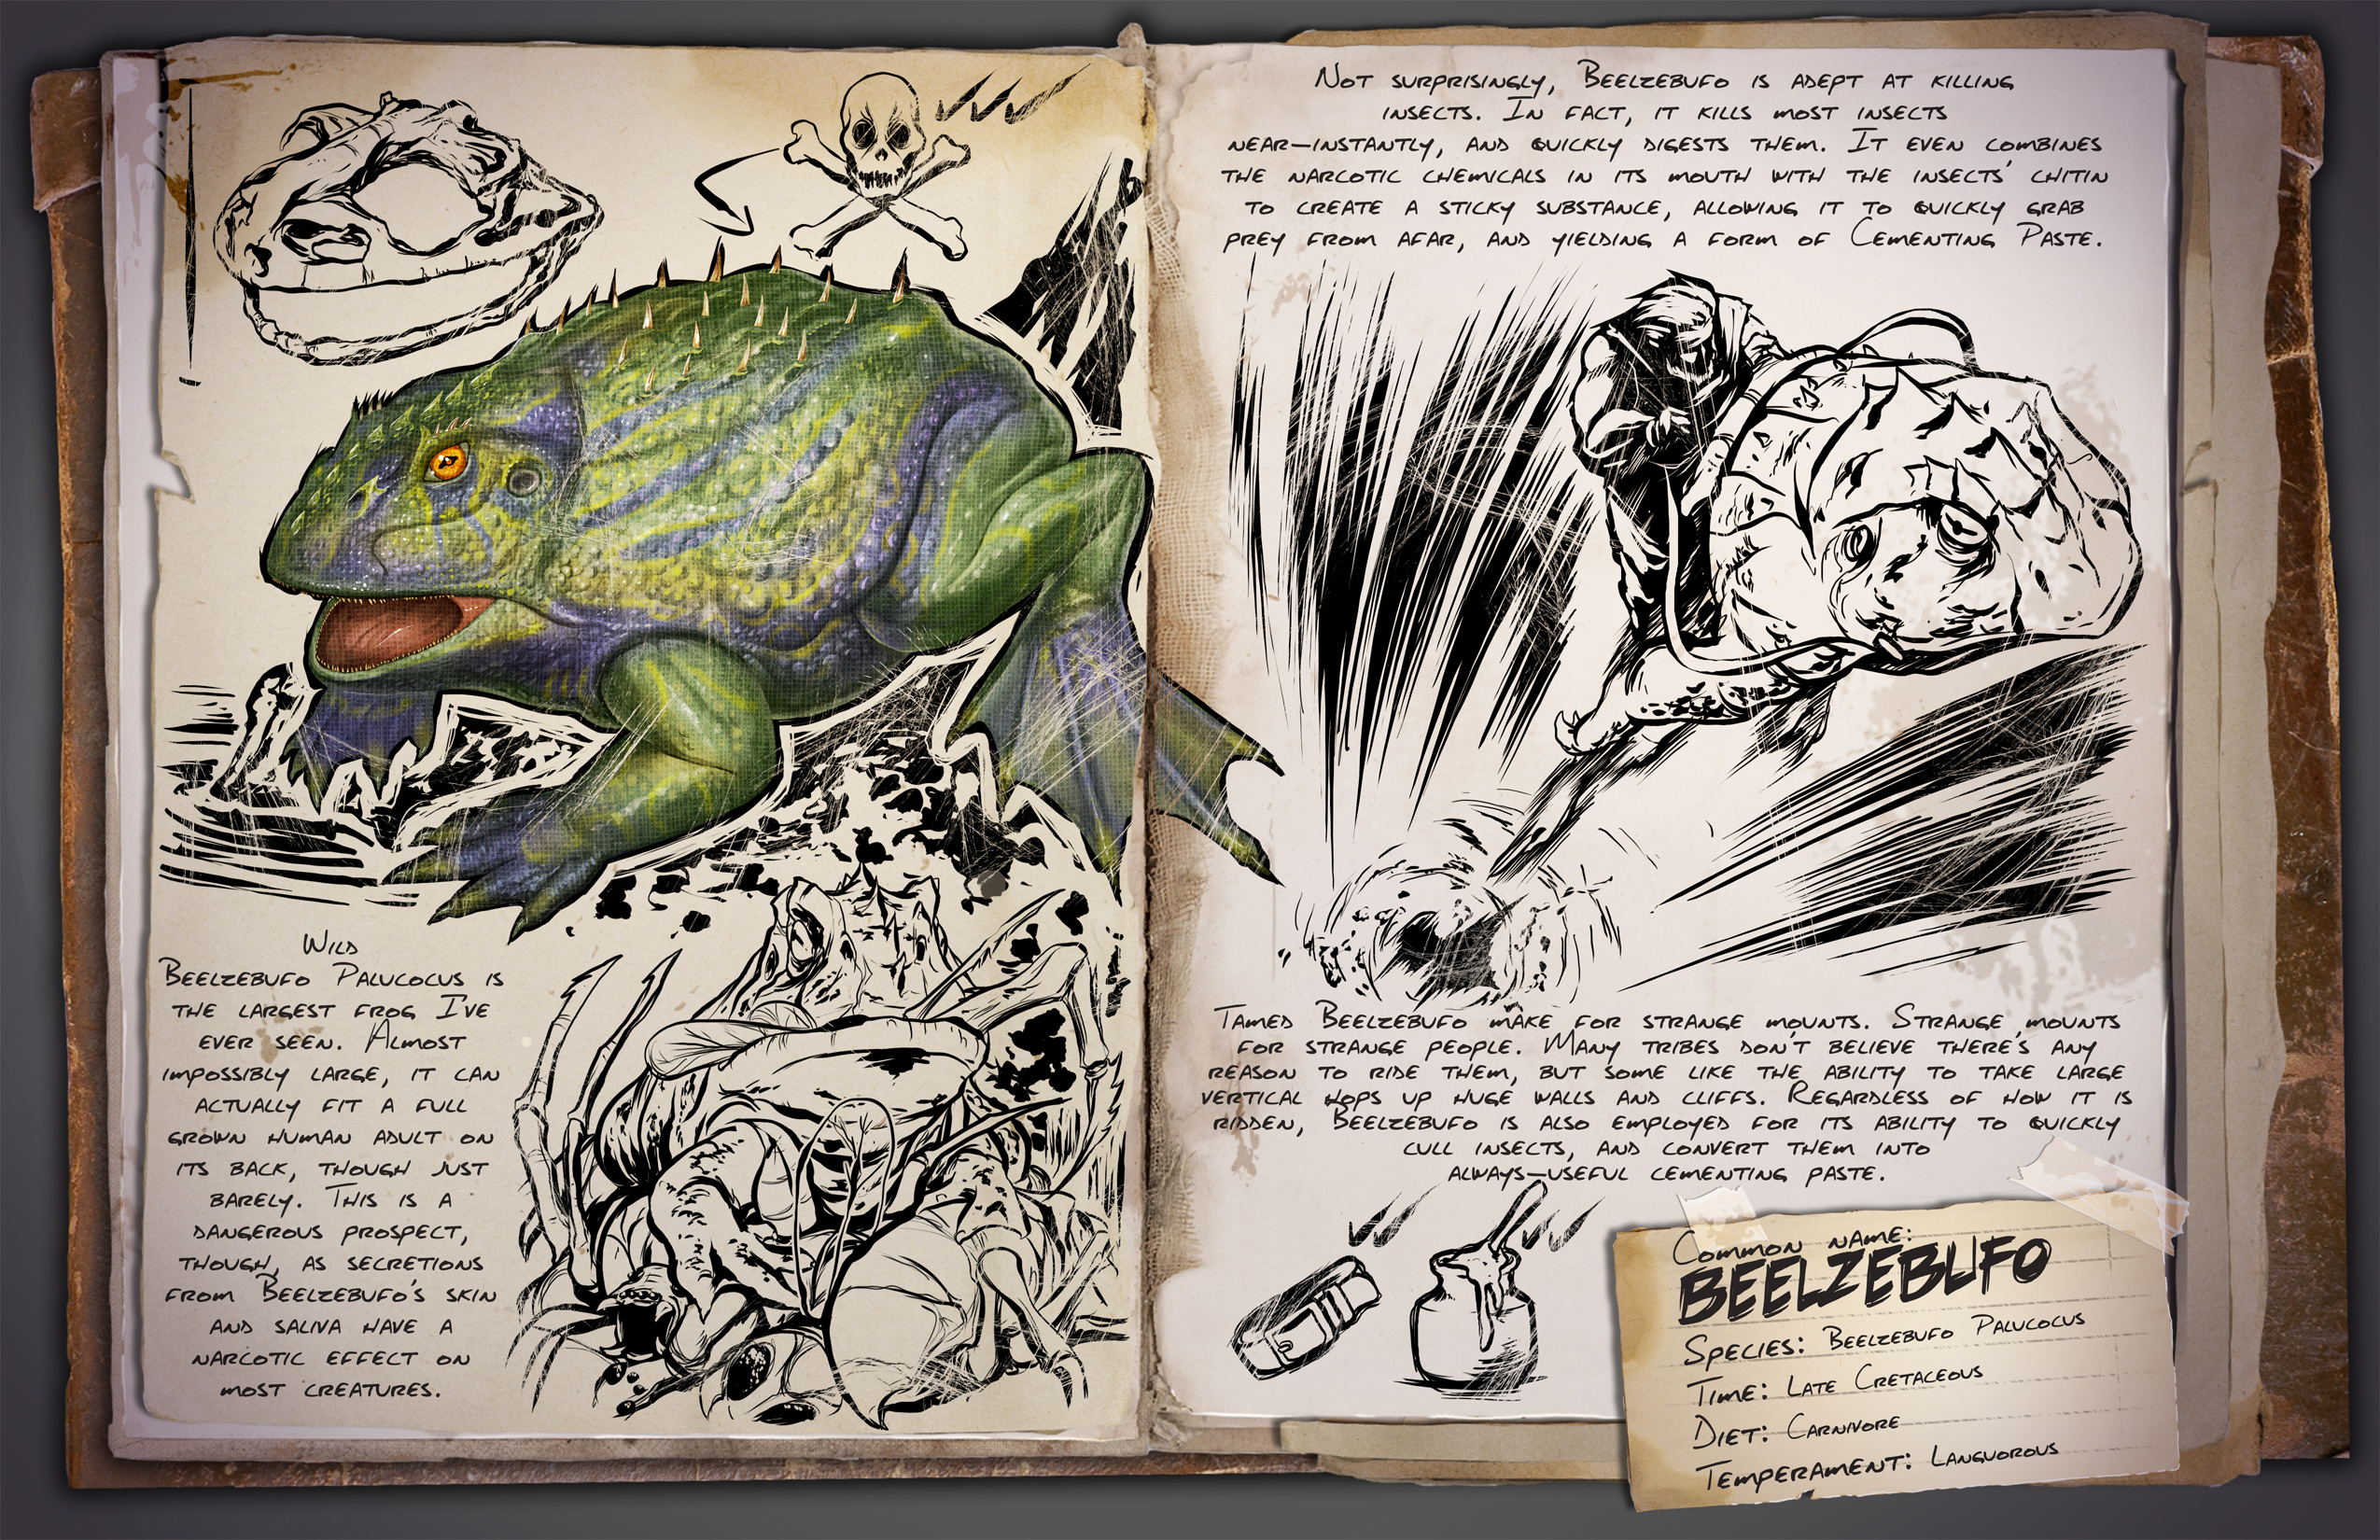 Aug 13, 2015 ARK s Survival Of The Fittest Makes Crafting Tense ARK